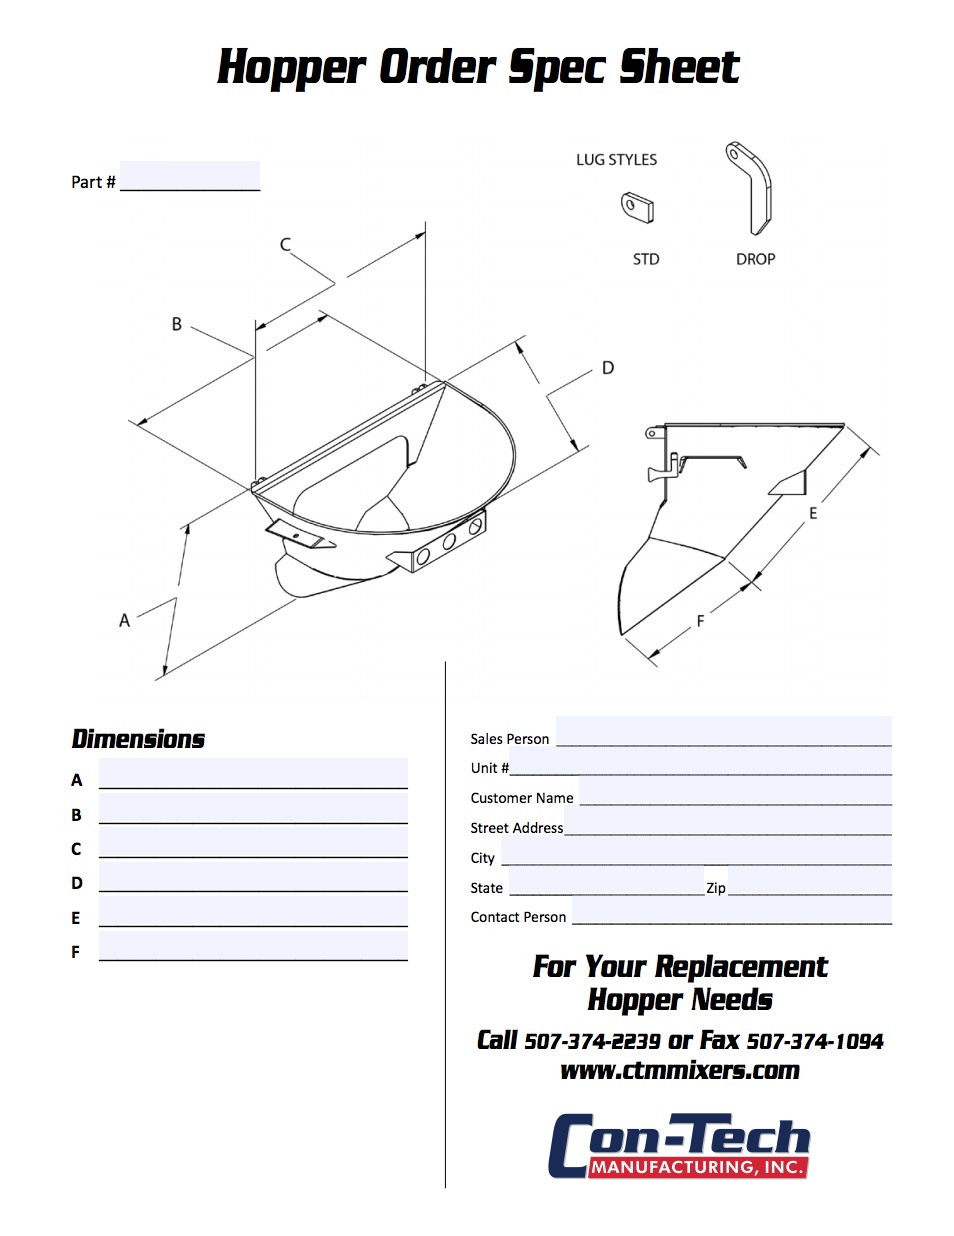 Hopper Replacement Order Form